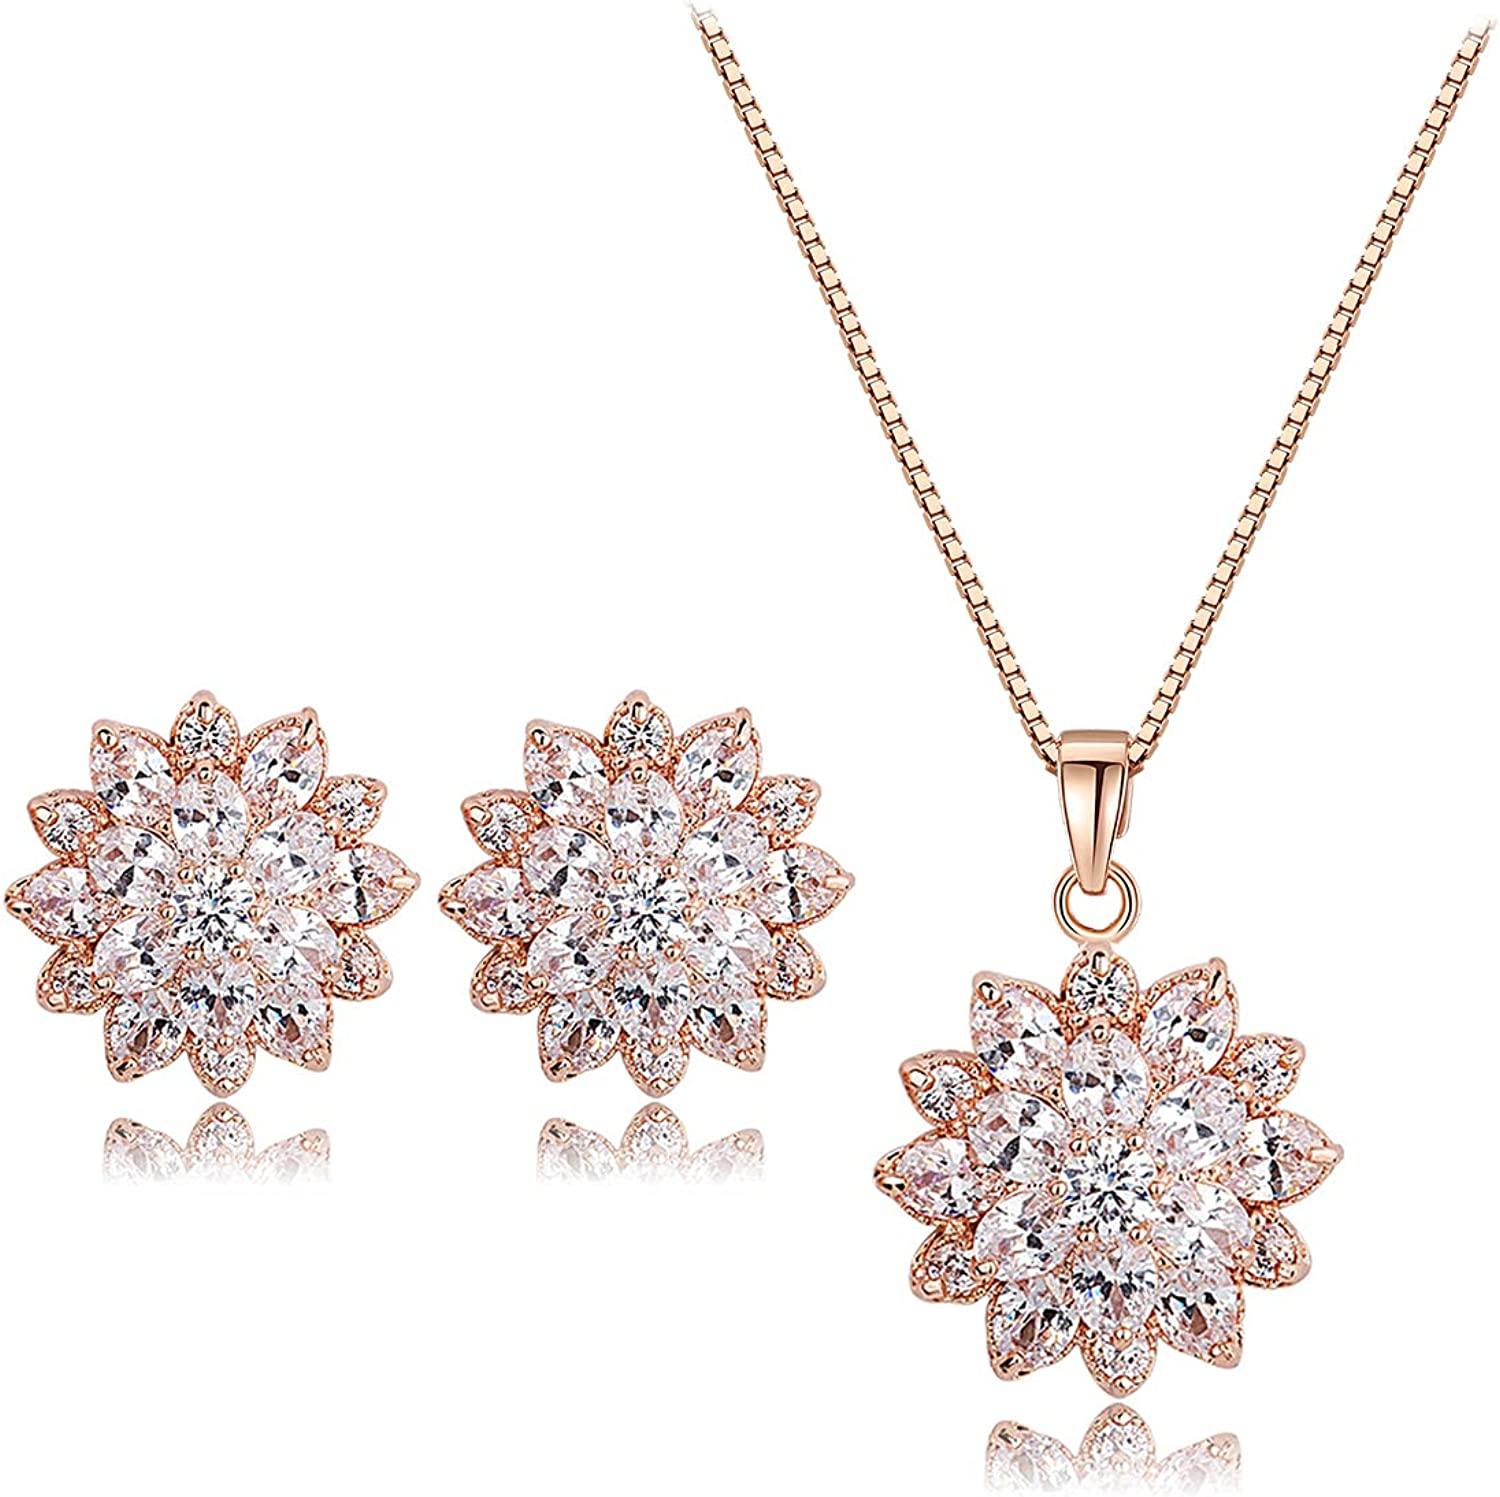 UDYLGOON Cubic Zirconia Flower Earrings Necklace Jewelry Sets Bridal Wedding Prom Birthday Anniversary Mother's Day Jewelry Gifts for Women Mom Wife Sister Best Friends